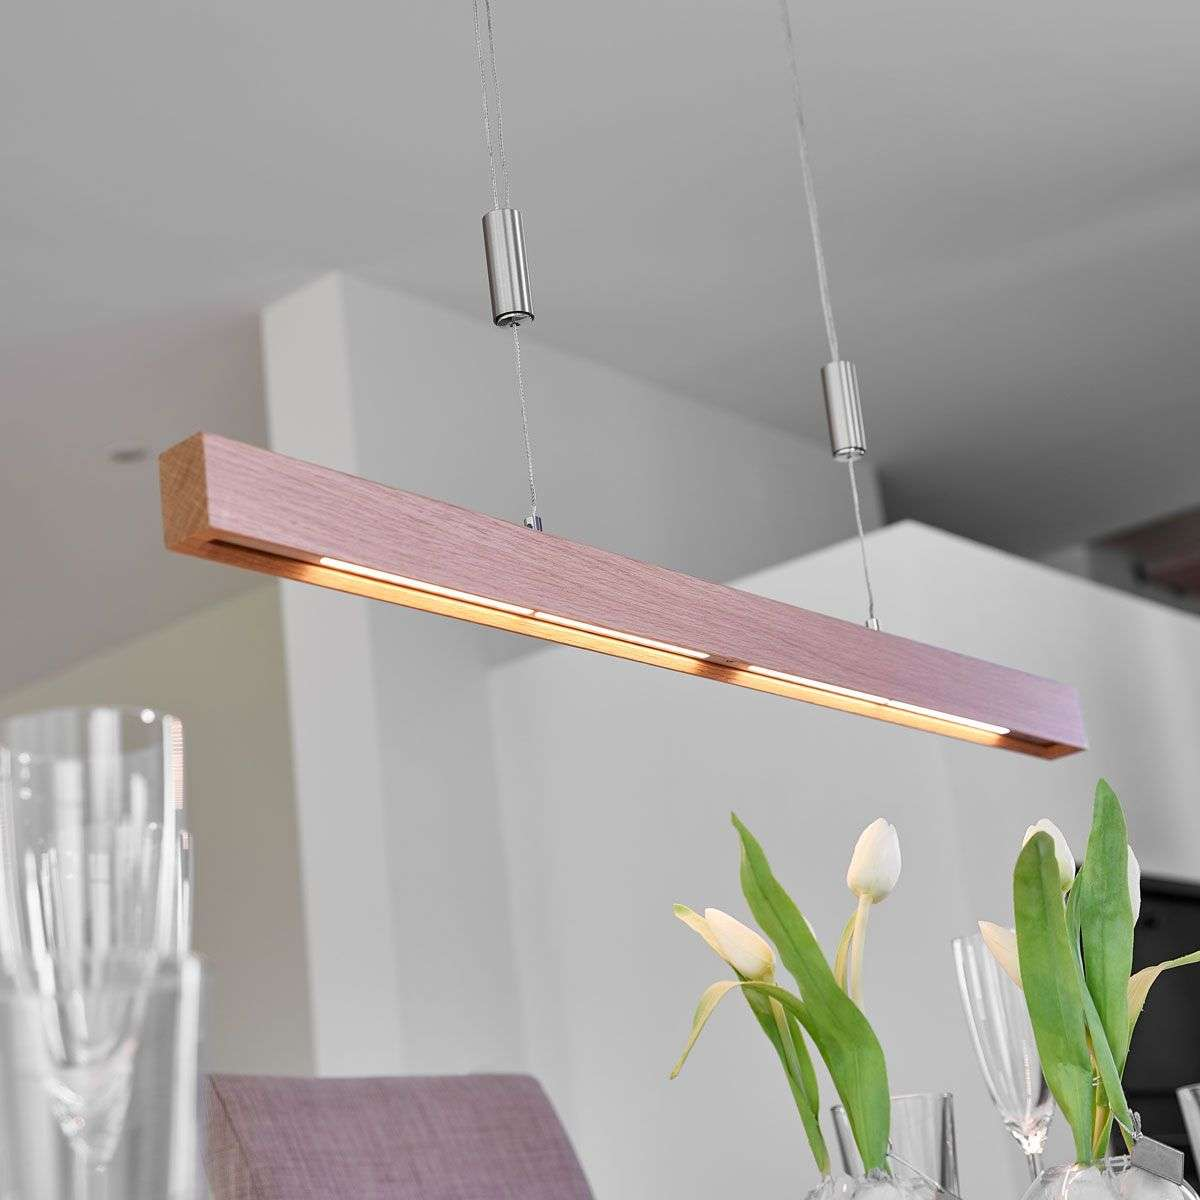 Linear oak led pendant lamp nora dimmable lights nora oak led linear pendant lamp dimmable 6722396 31 aloadofball Images